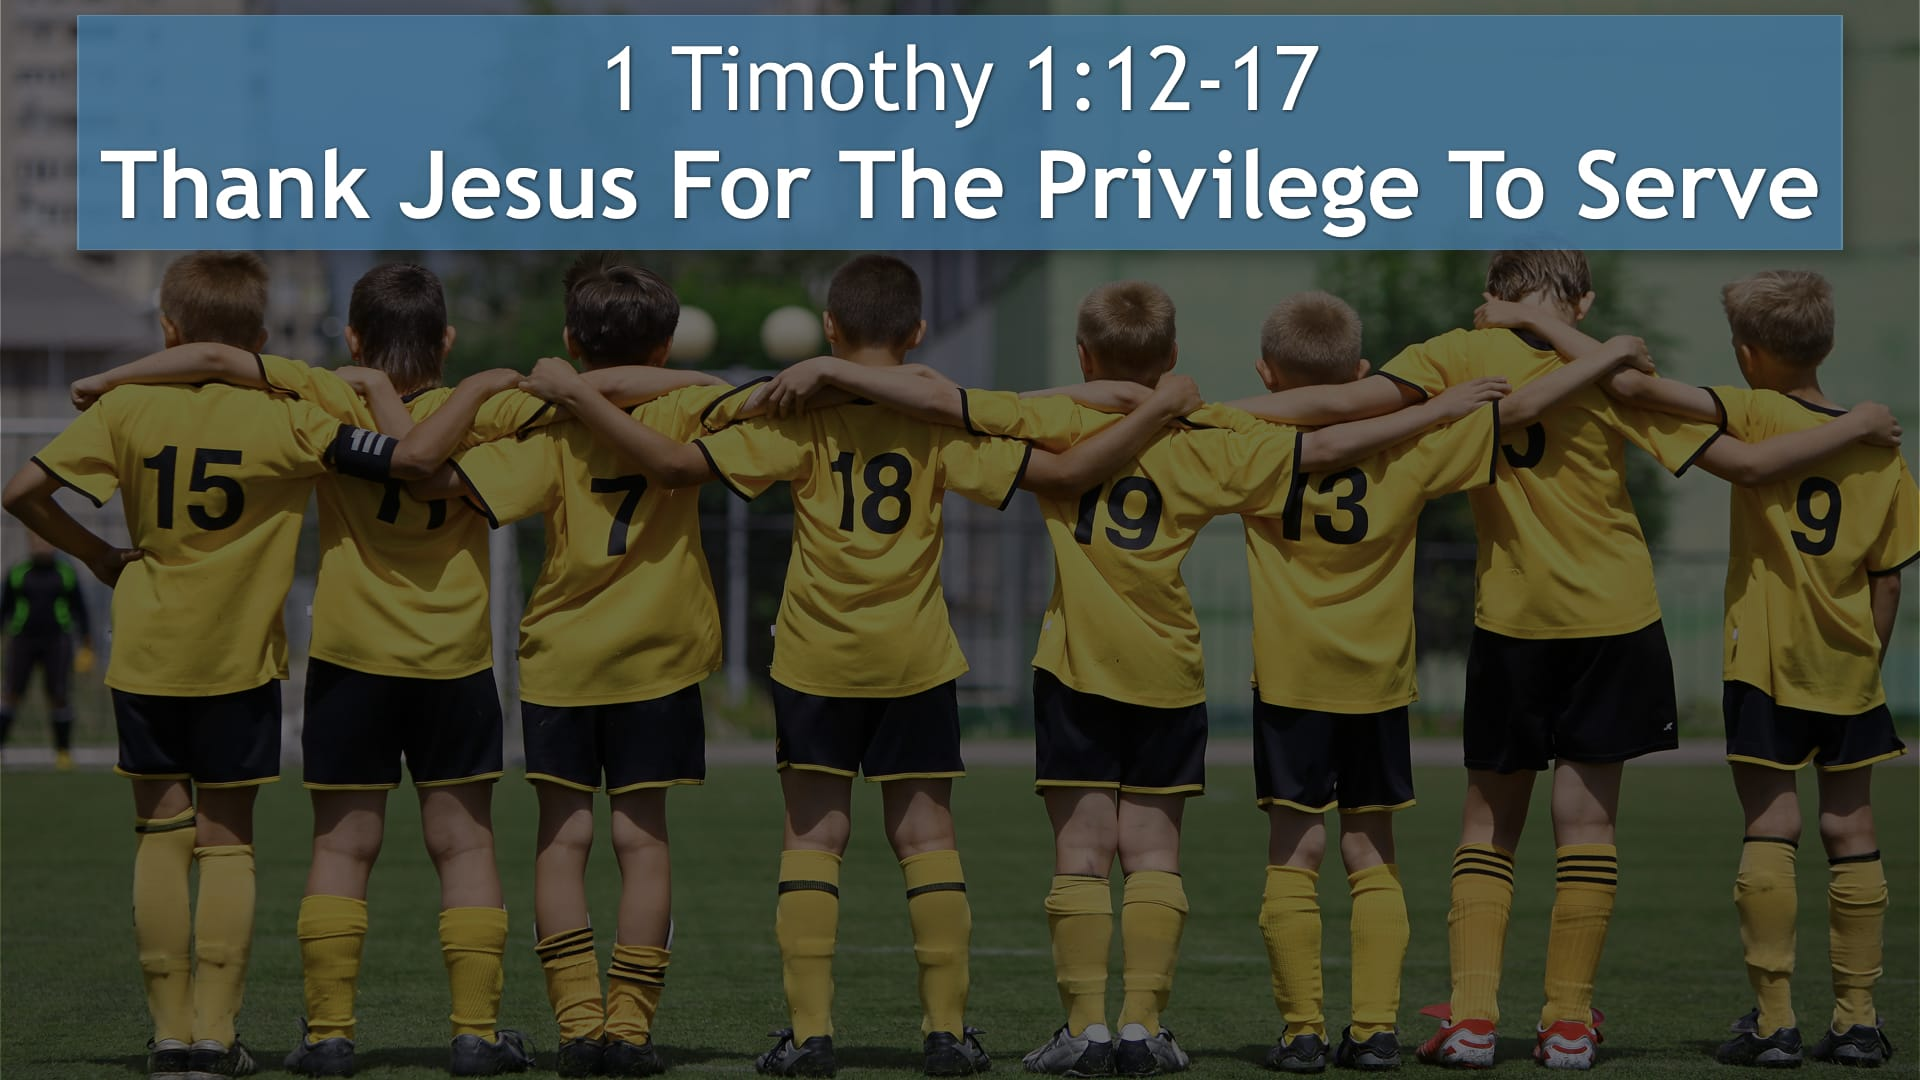 1 Timothy 1:12-17, Thank Jesus For The Privilege To Serve